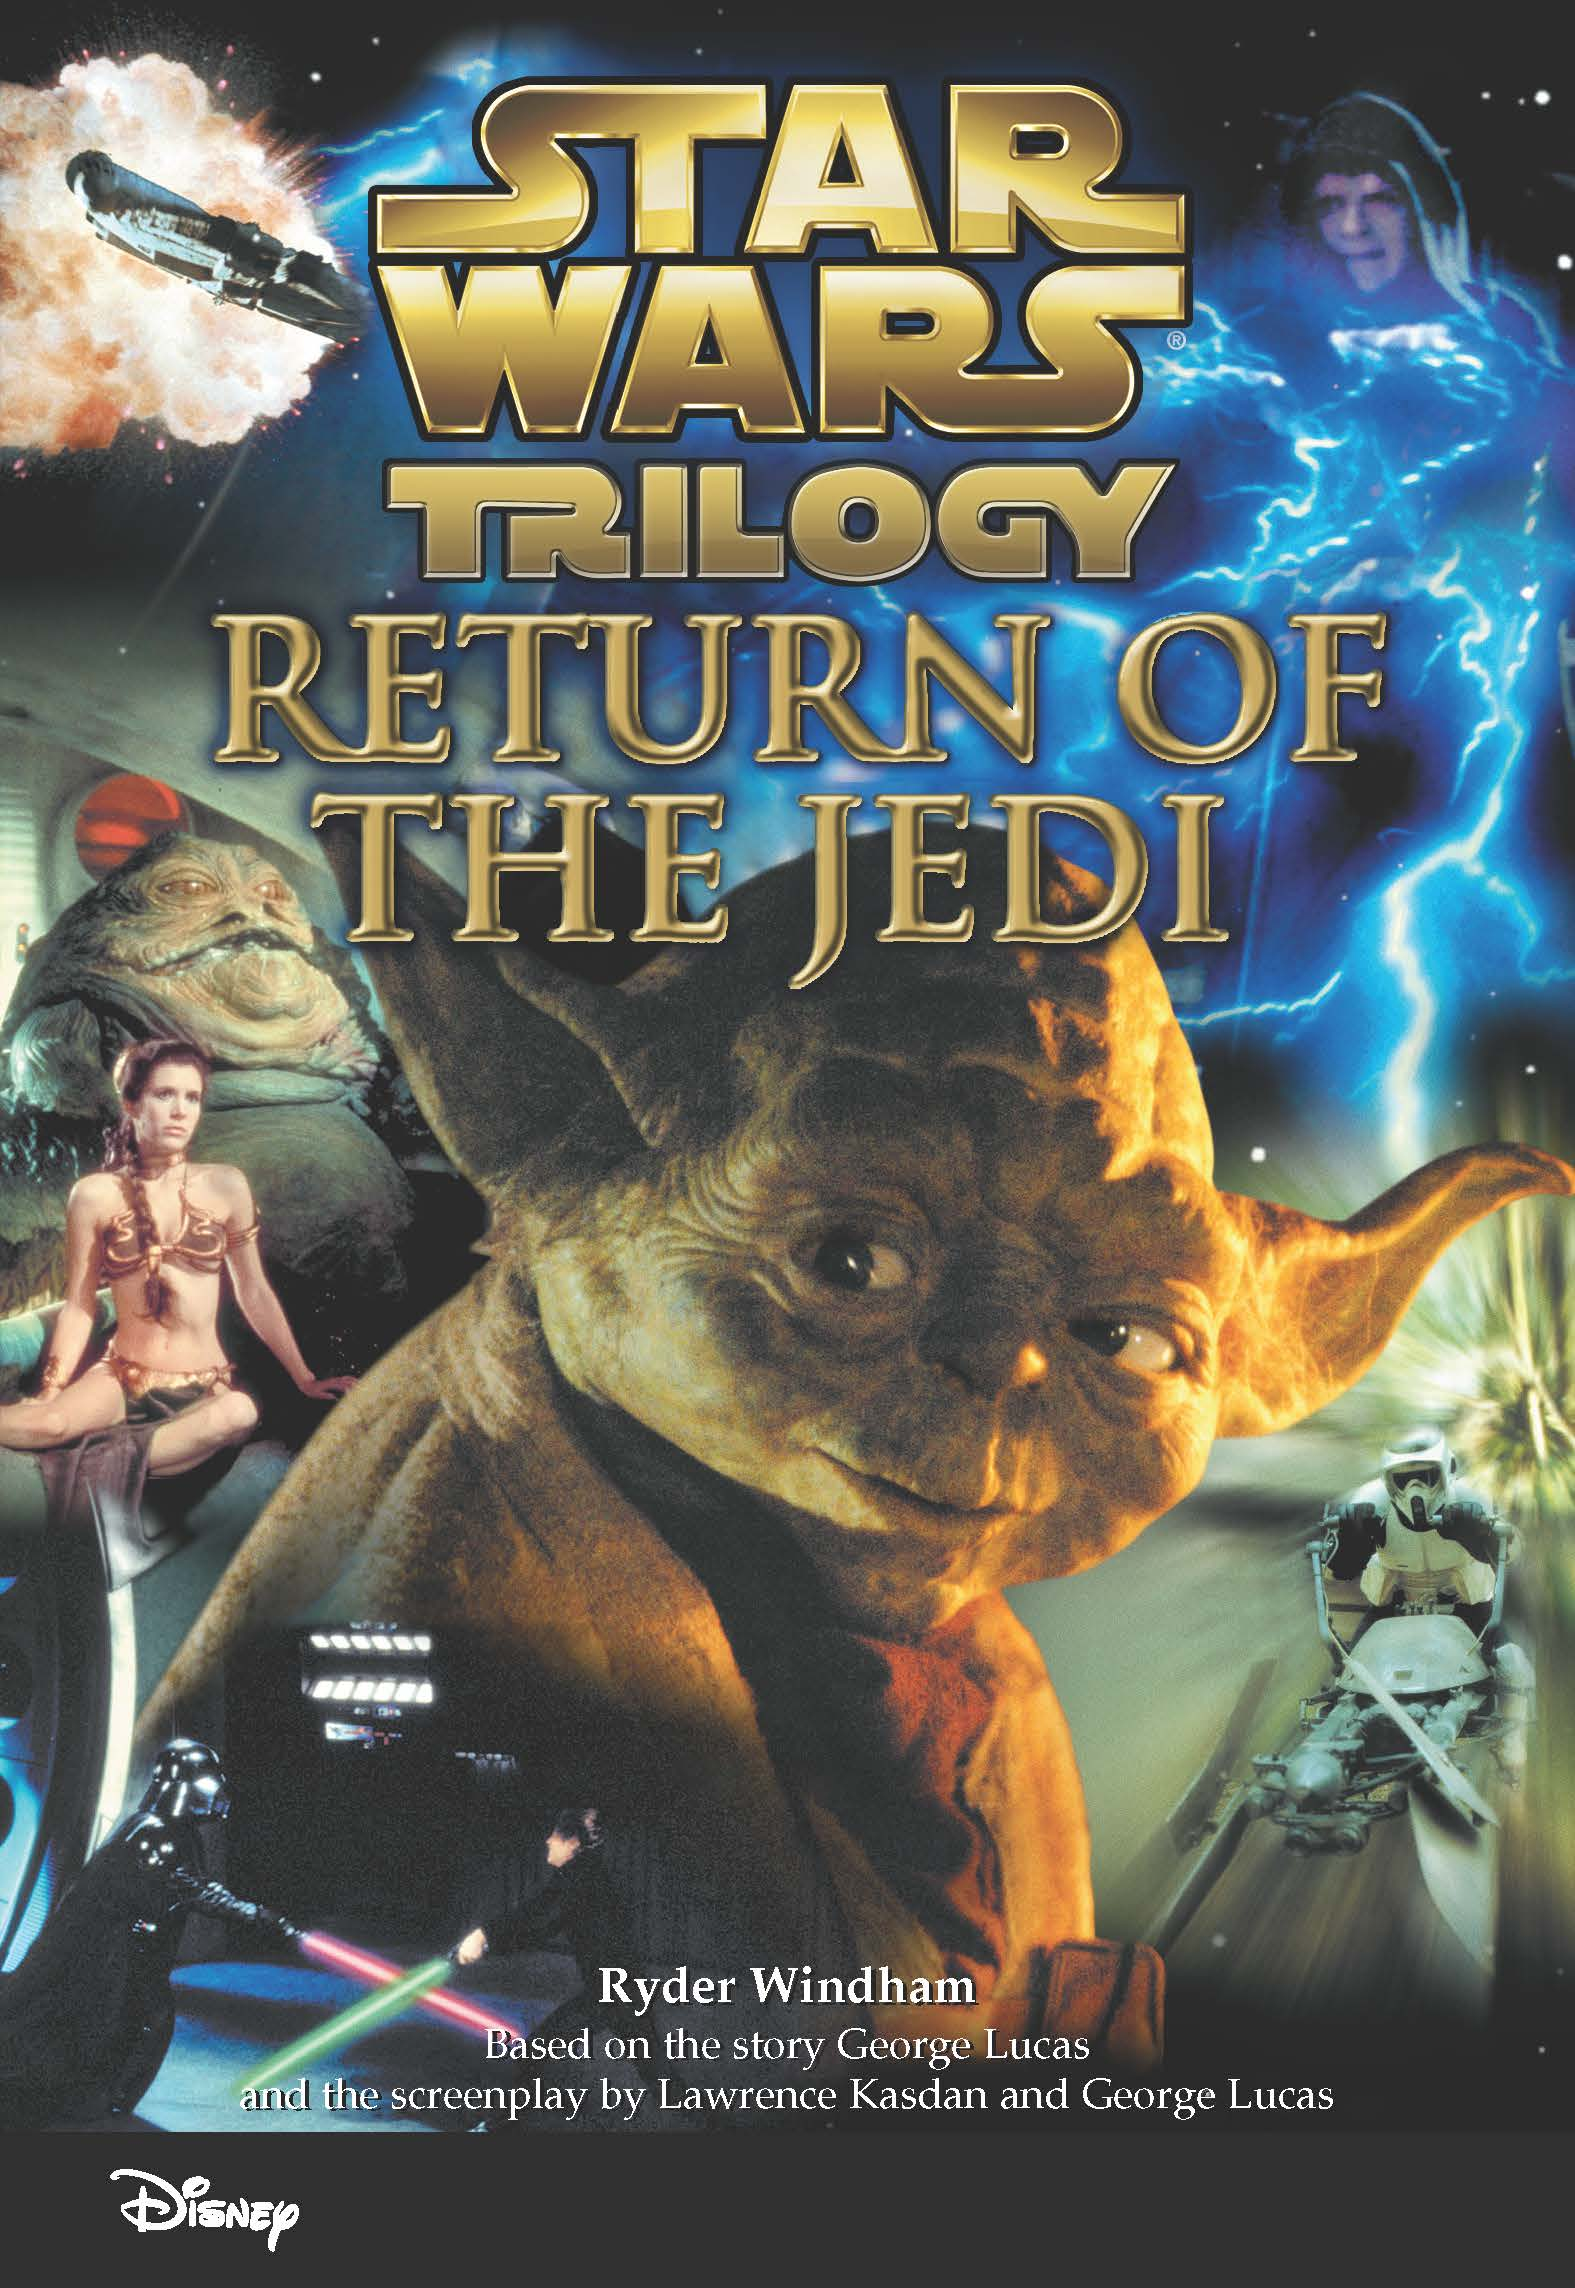 Star-Wars-Return-of-the-Jedi.jpg